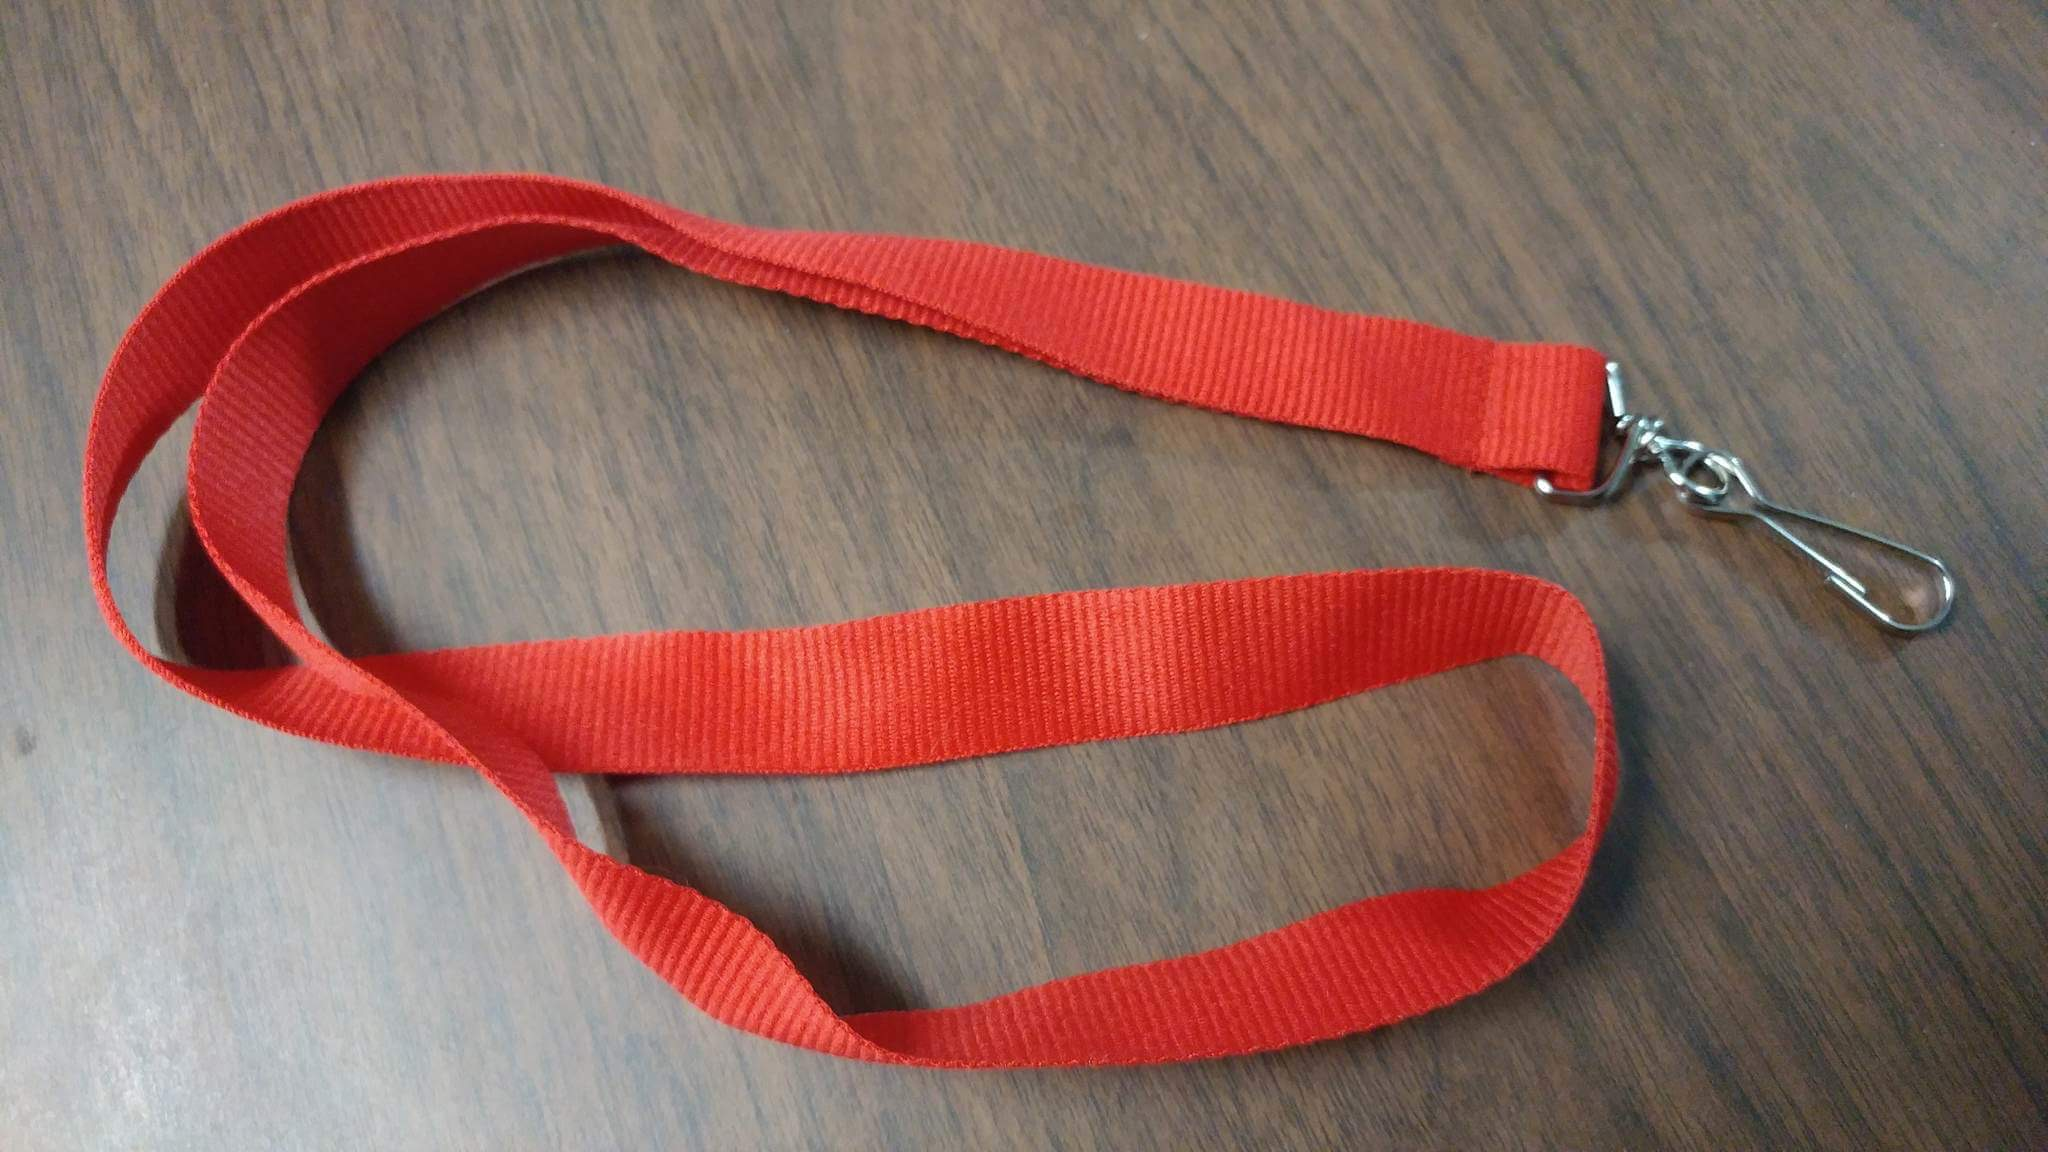 Red Lanyard Policy